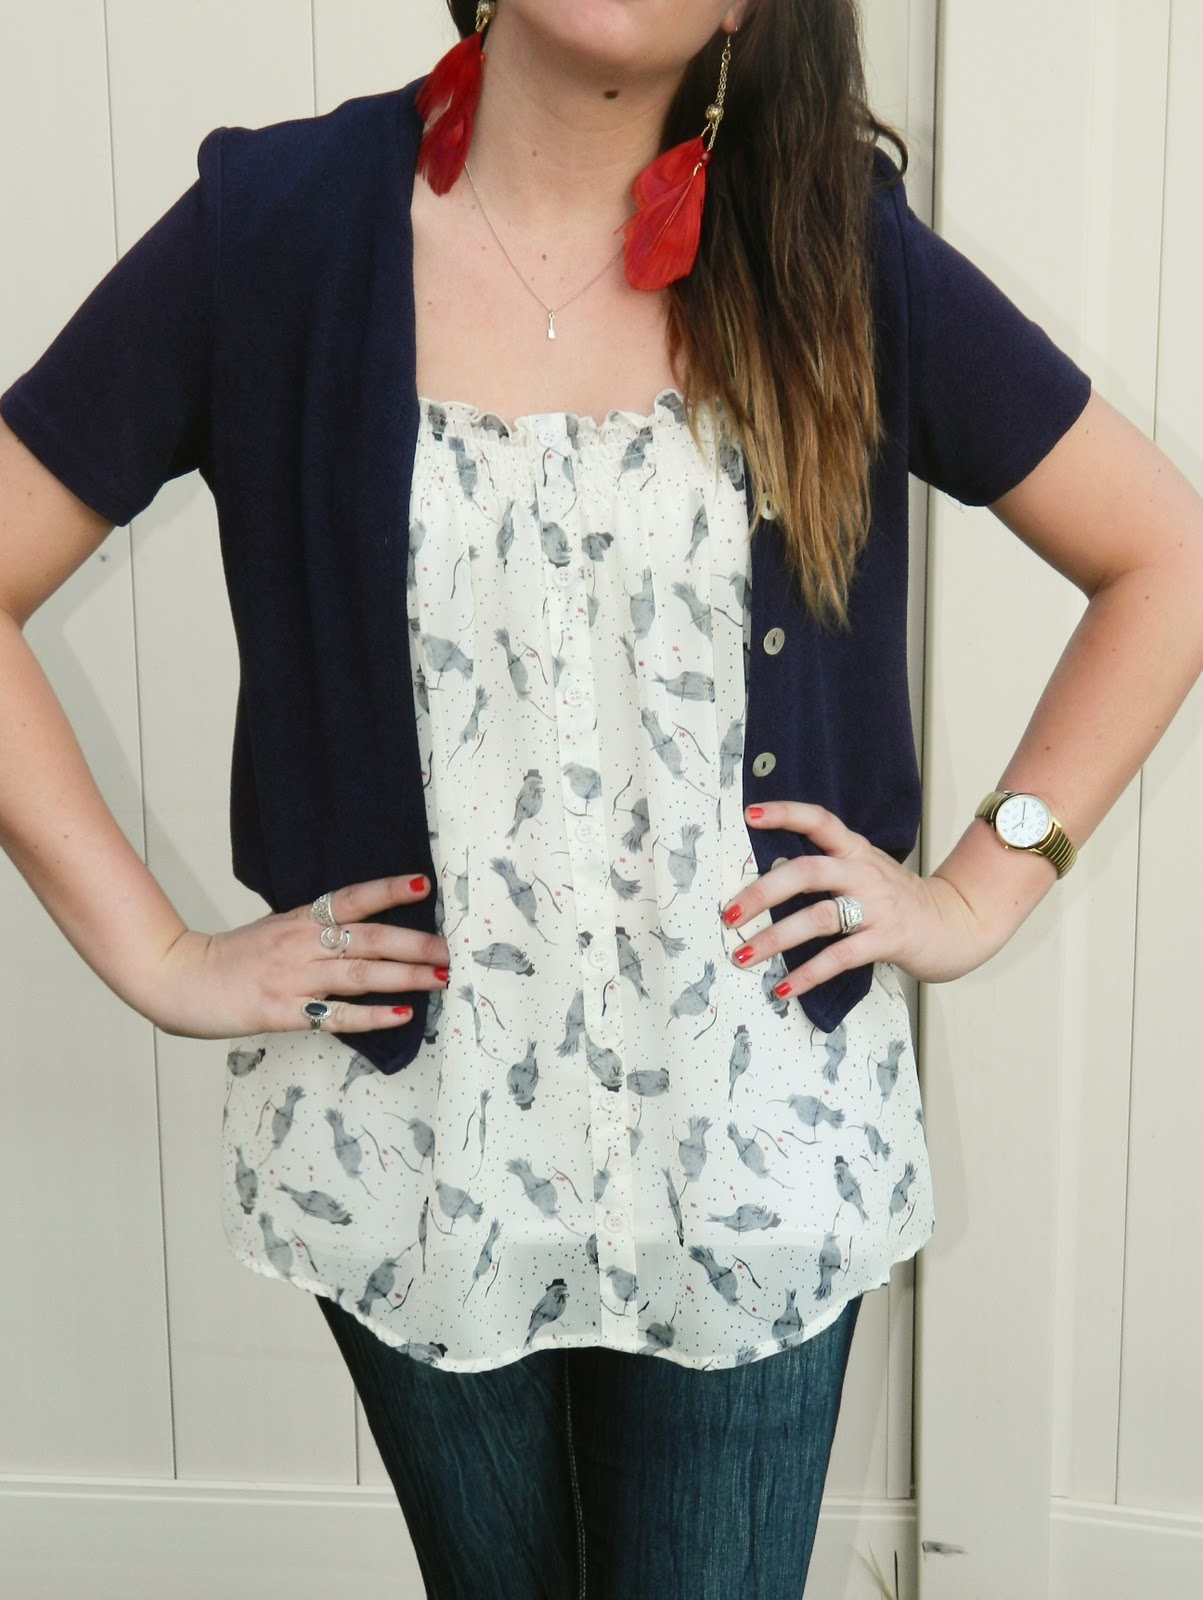 feather earings, floral top, blue cardigan